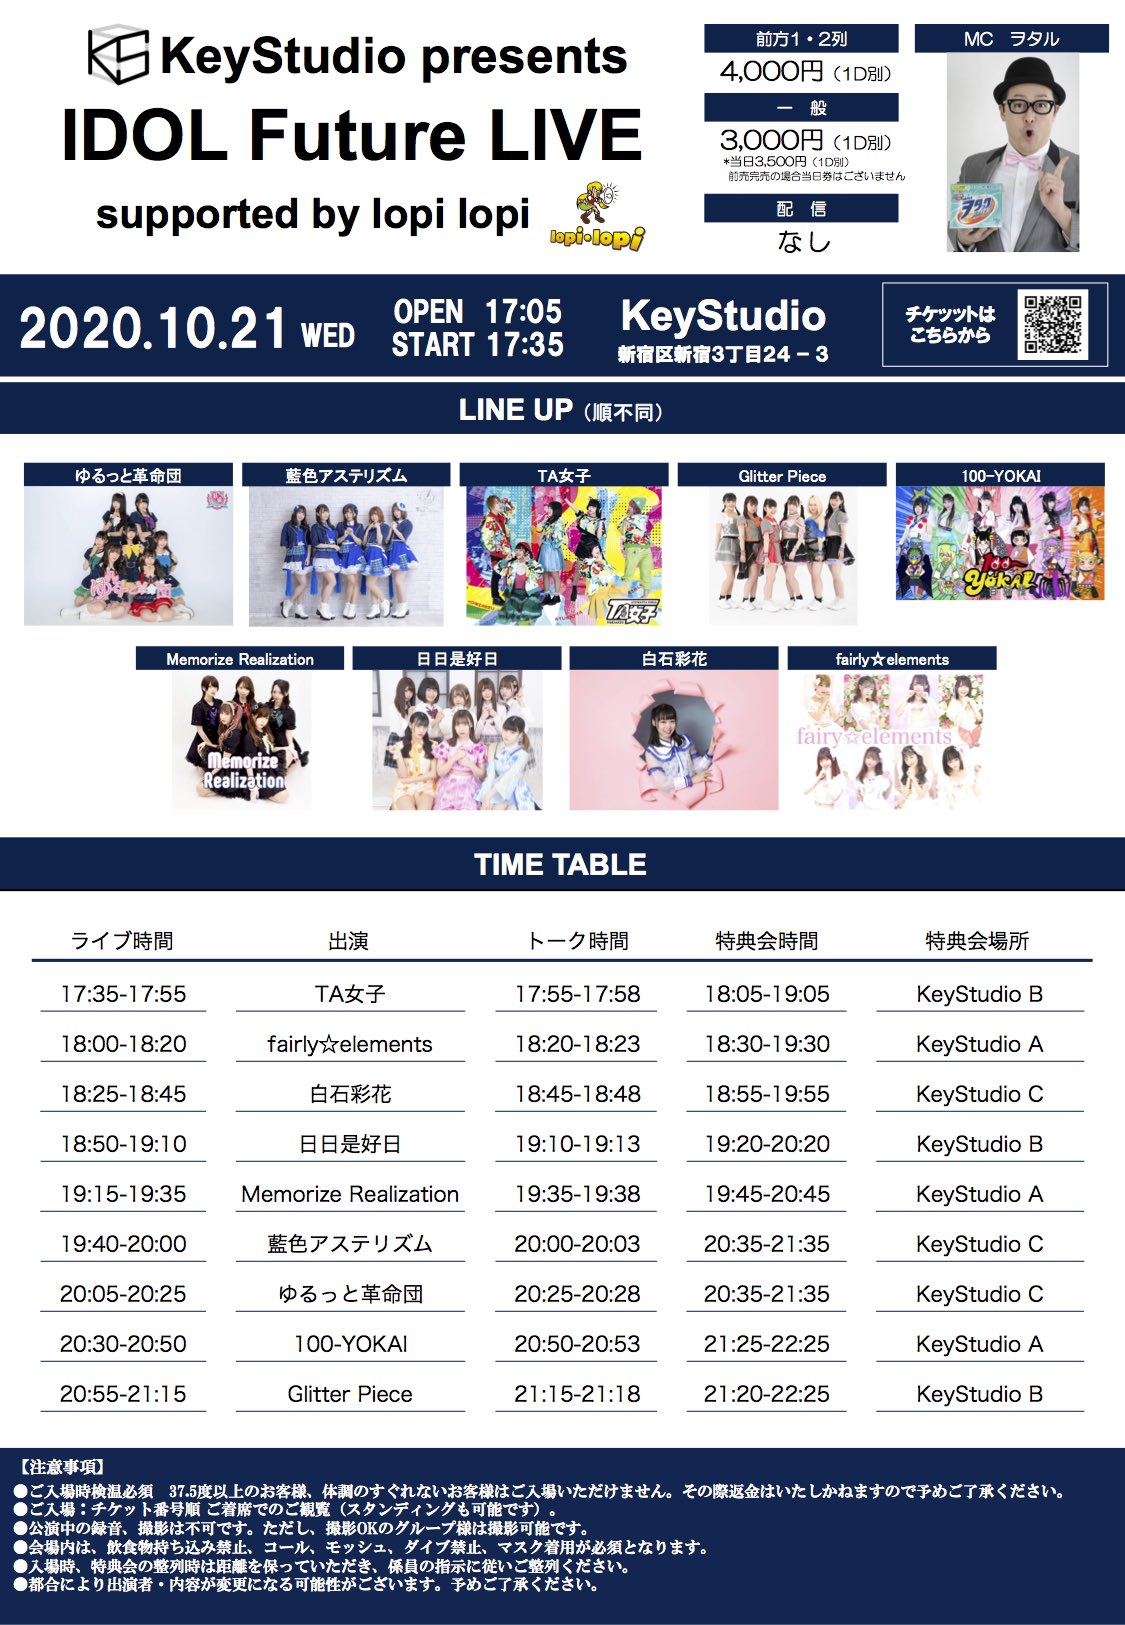 Keystudio Presents IDOL Future LIVE